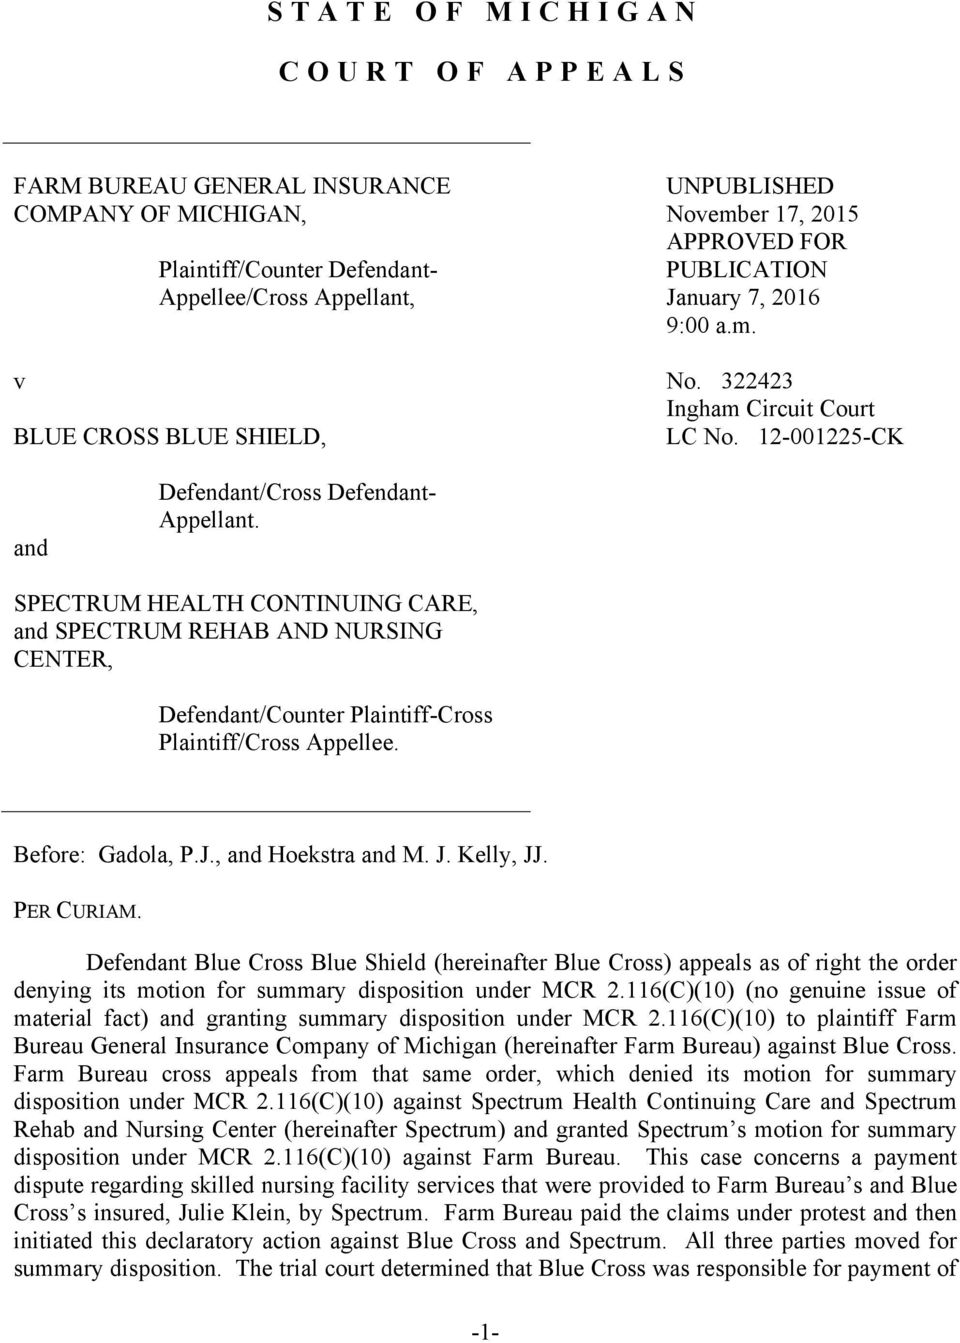 SPECTRUM HEALTH CONTINUING CARE, and SPECTRUM REHAB AND NURSING CENTER, Defendant/Counter Plaintiff-Cross Plaintiff/Cross Appellee. Before: Gadola, P.J., and Hoekstra and M. J. Kelly, JJ. PER CURIAM.